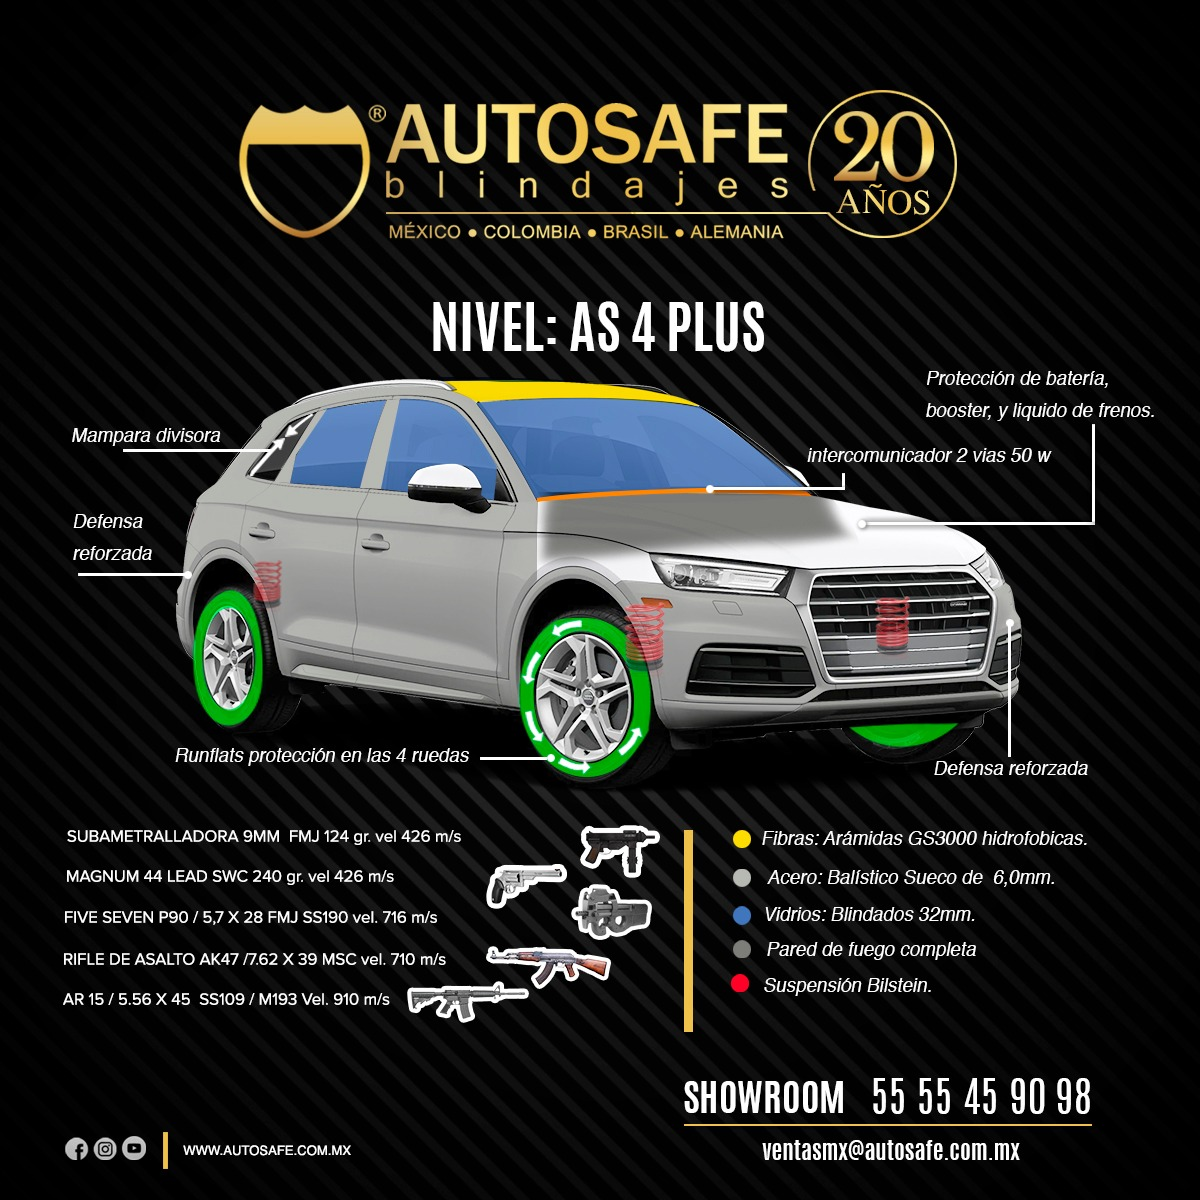 Auto Safe Blindaje - Nivel AS 4 PLUS